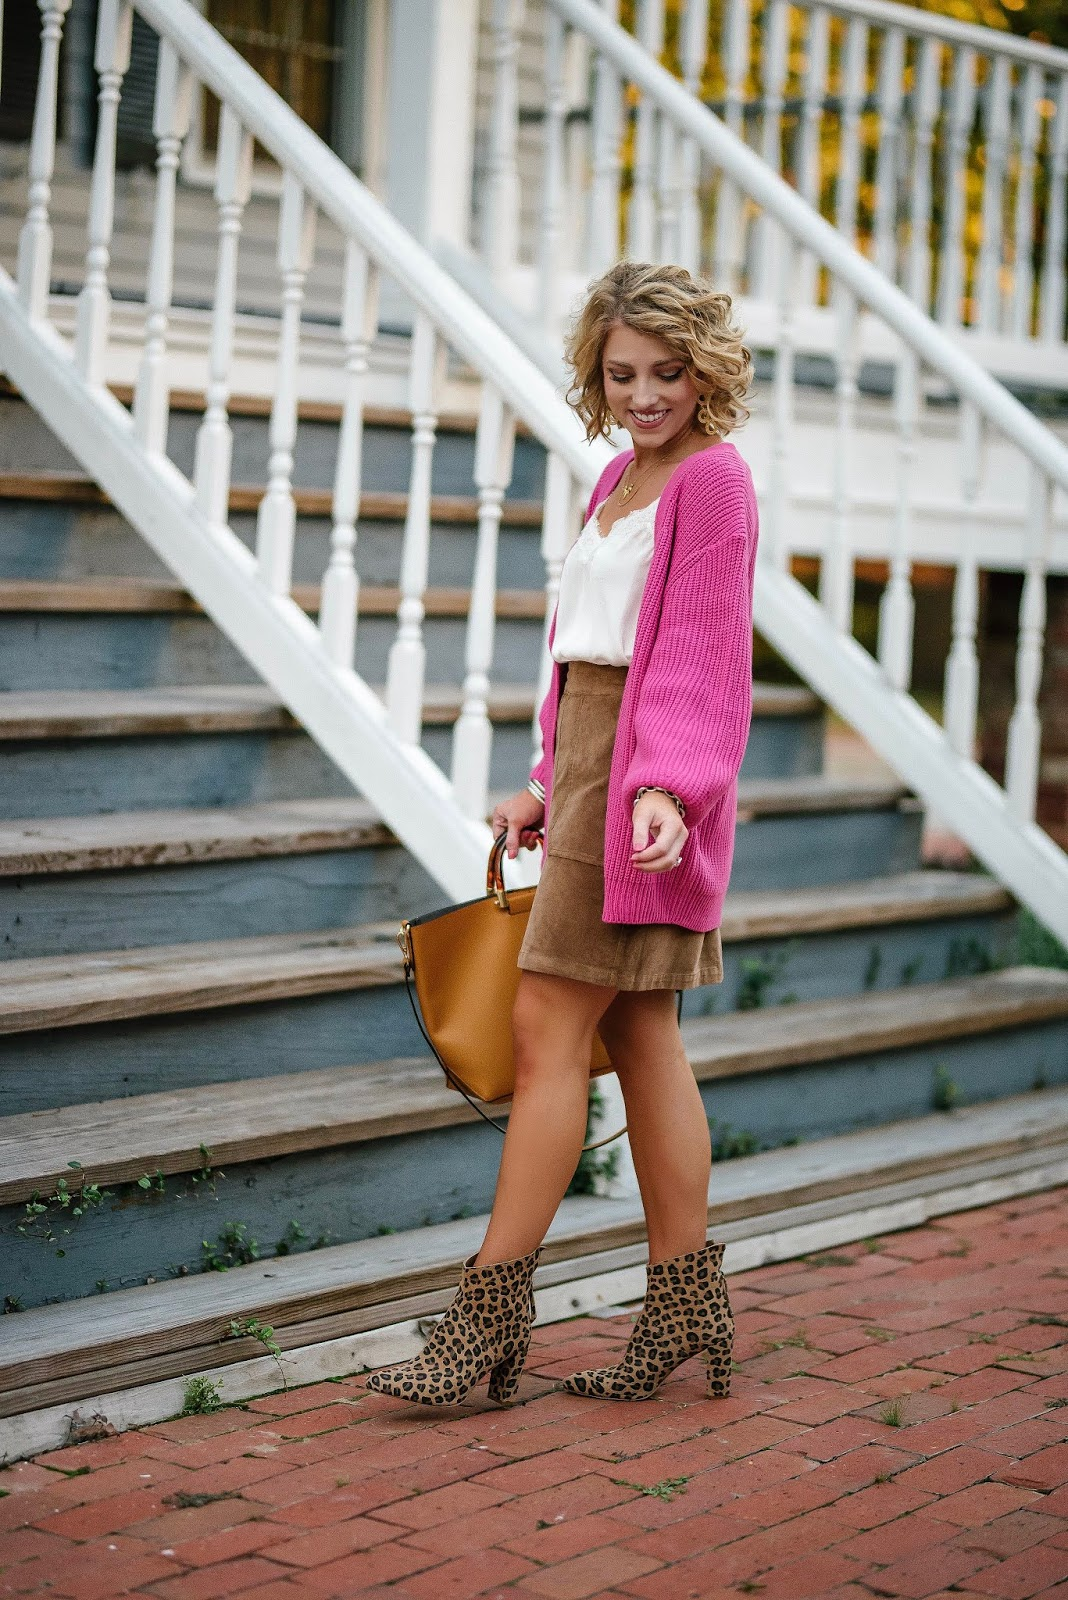 Fall Style: Under $50 Hot Pink Cardigan, $51 Brown Cord Skirt & Leopard Boots - Something Delightful Blog